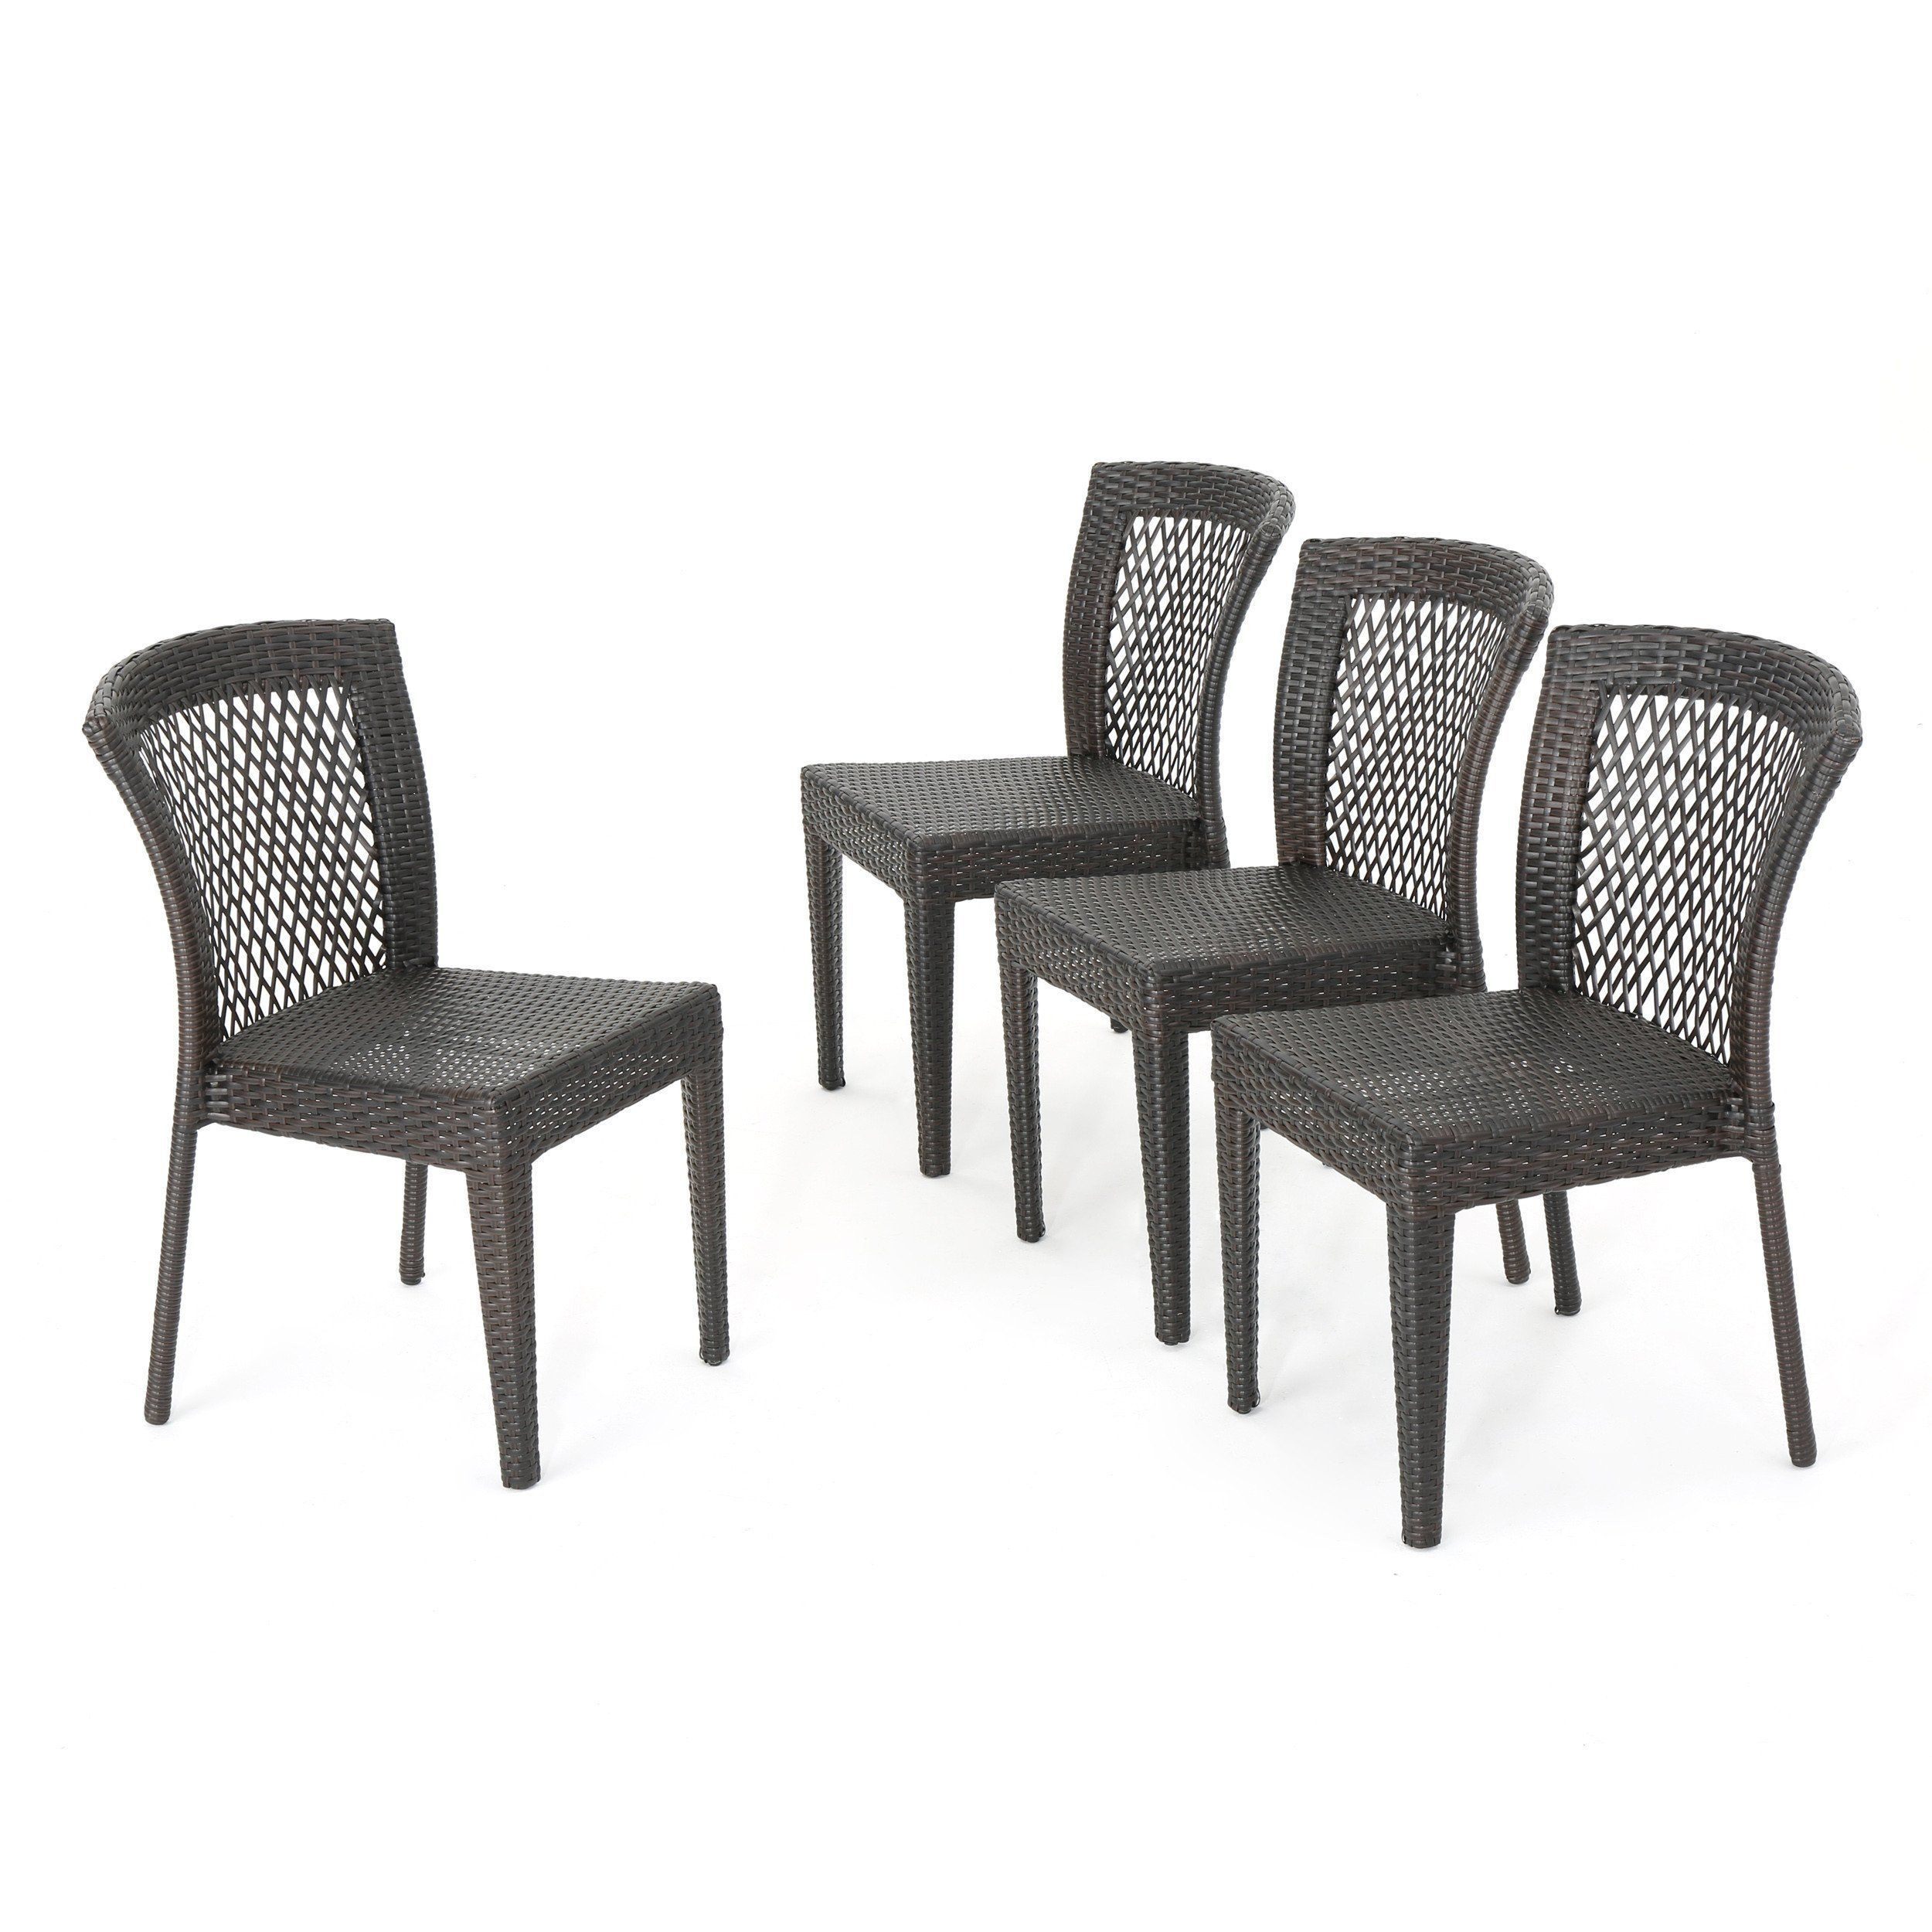 Chatham Outdoor Multibrown Wicker Stacking Dining Chairs Set Of Captivating Dining Room Chair Set Of 4 Design Ideas